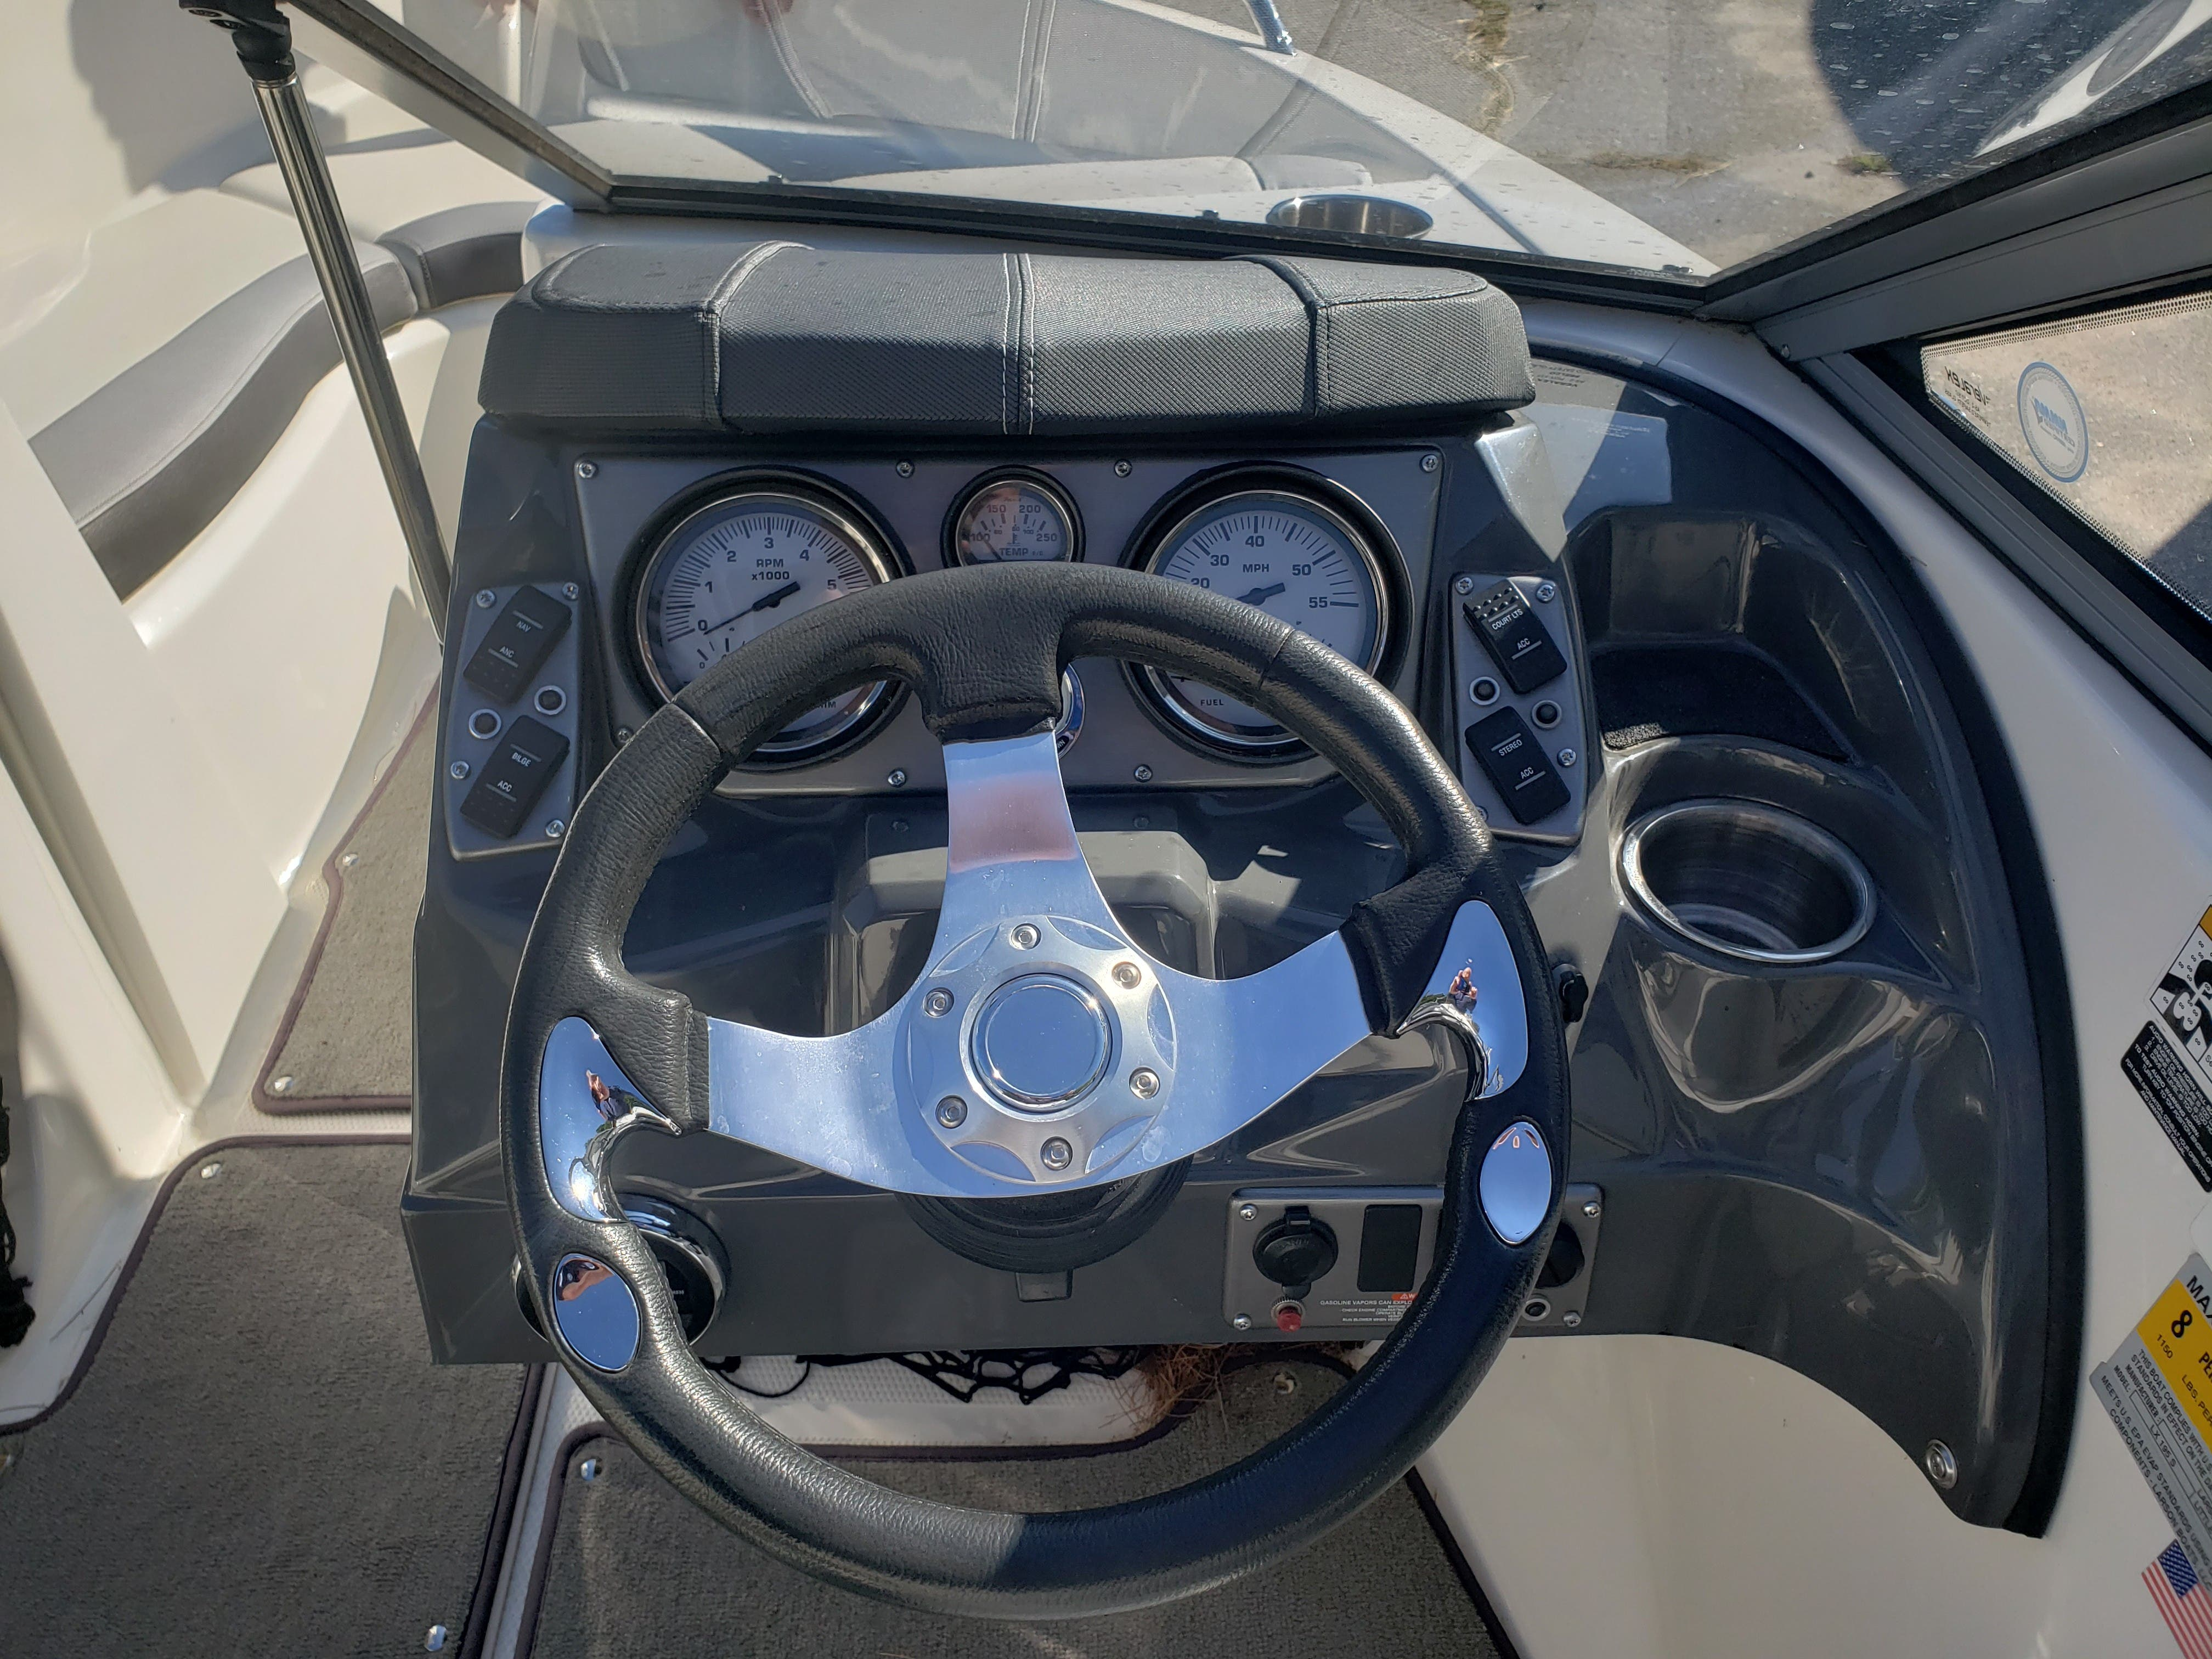 2014 Larson boat for sale, model of the boat is LX 195 S & Image # 5 of 10